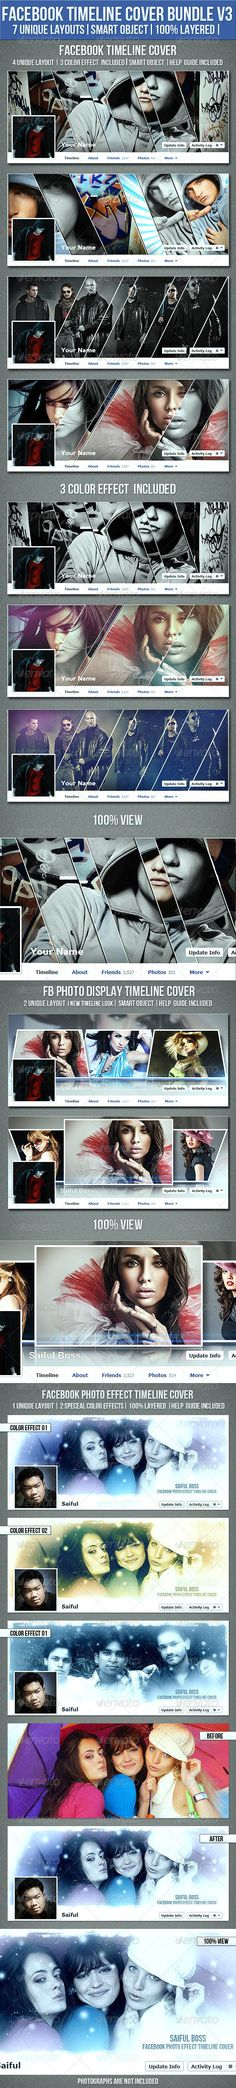 Web Design, Social Media Design, Graphic Design, Photography Timeline, Fb Banner, Facebook Cover Design, Web Portfolio, Fb Profile, Social Media Digital Marketing